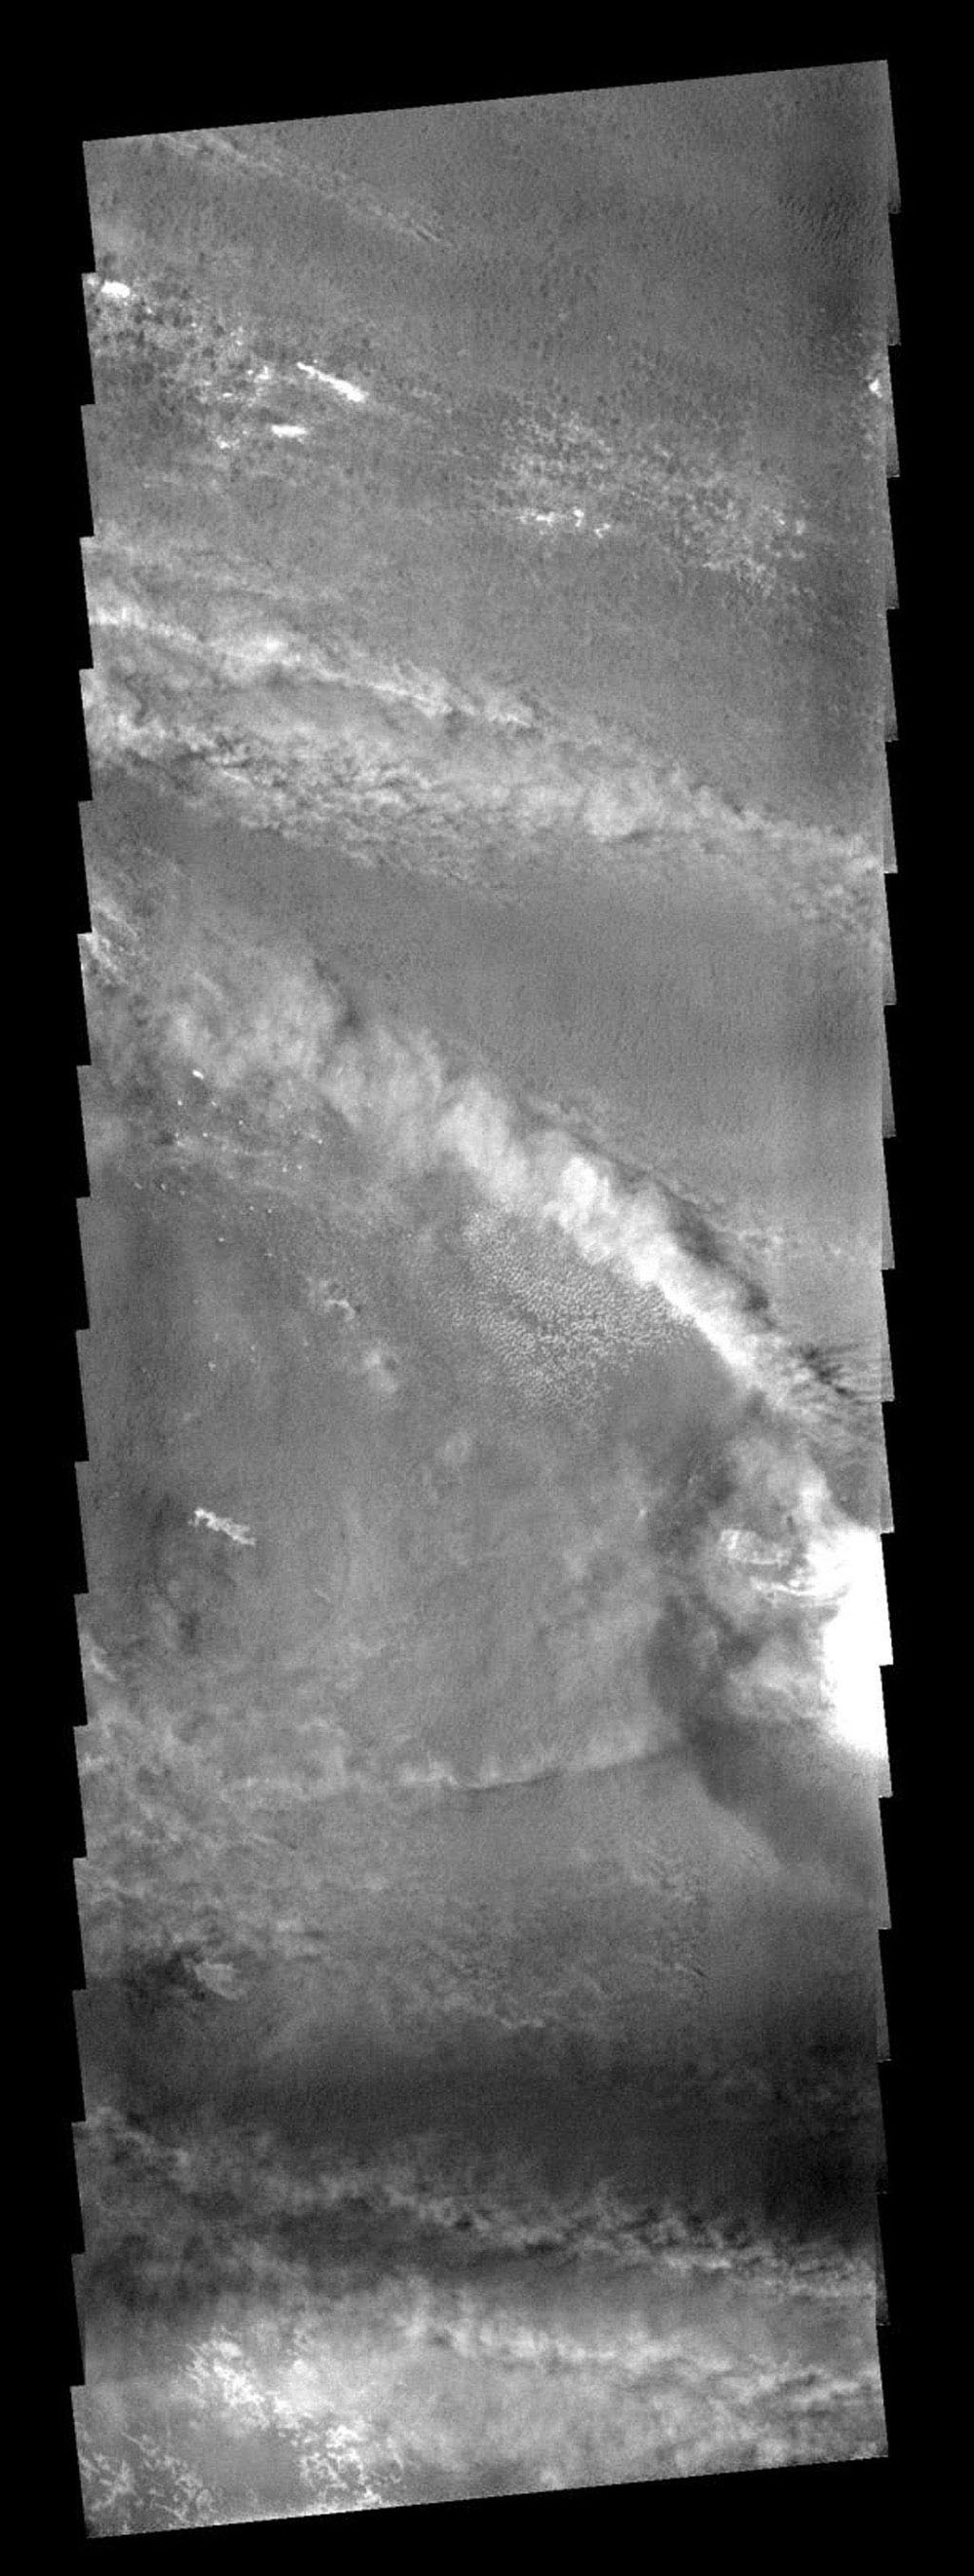 A bright line of clouds streaming off the north rim of the crater on Mars as seen by NASA's 2001 Mars Odyssey spacecraft.